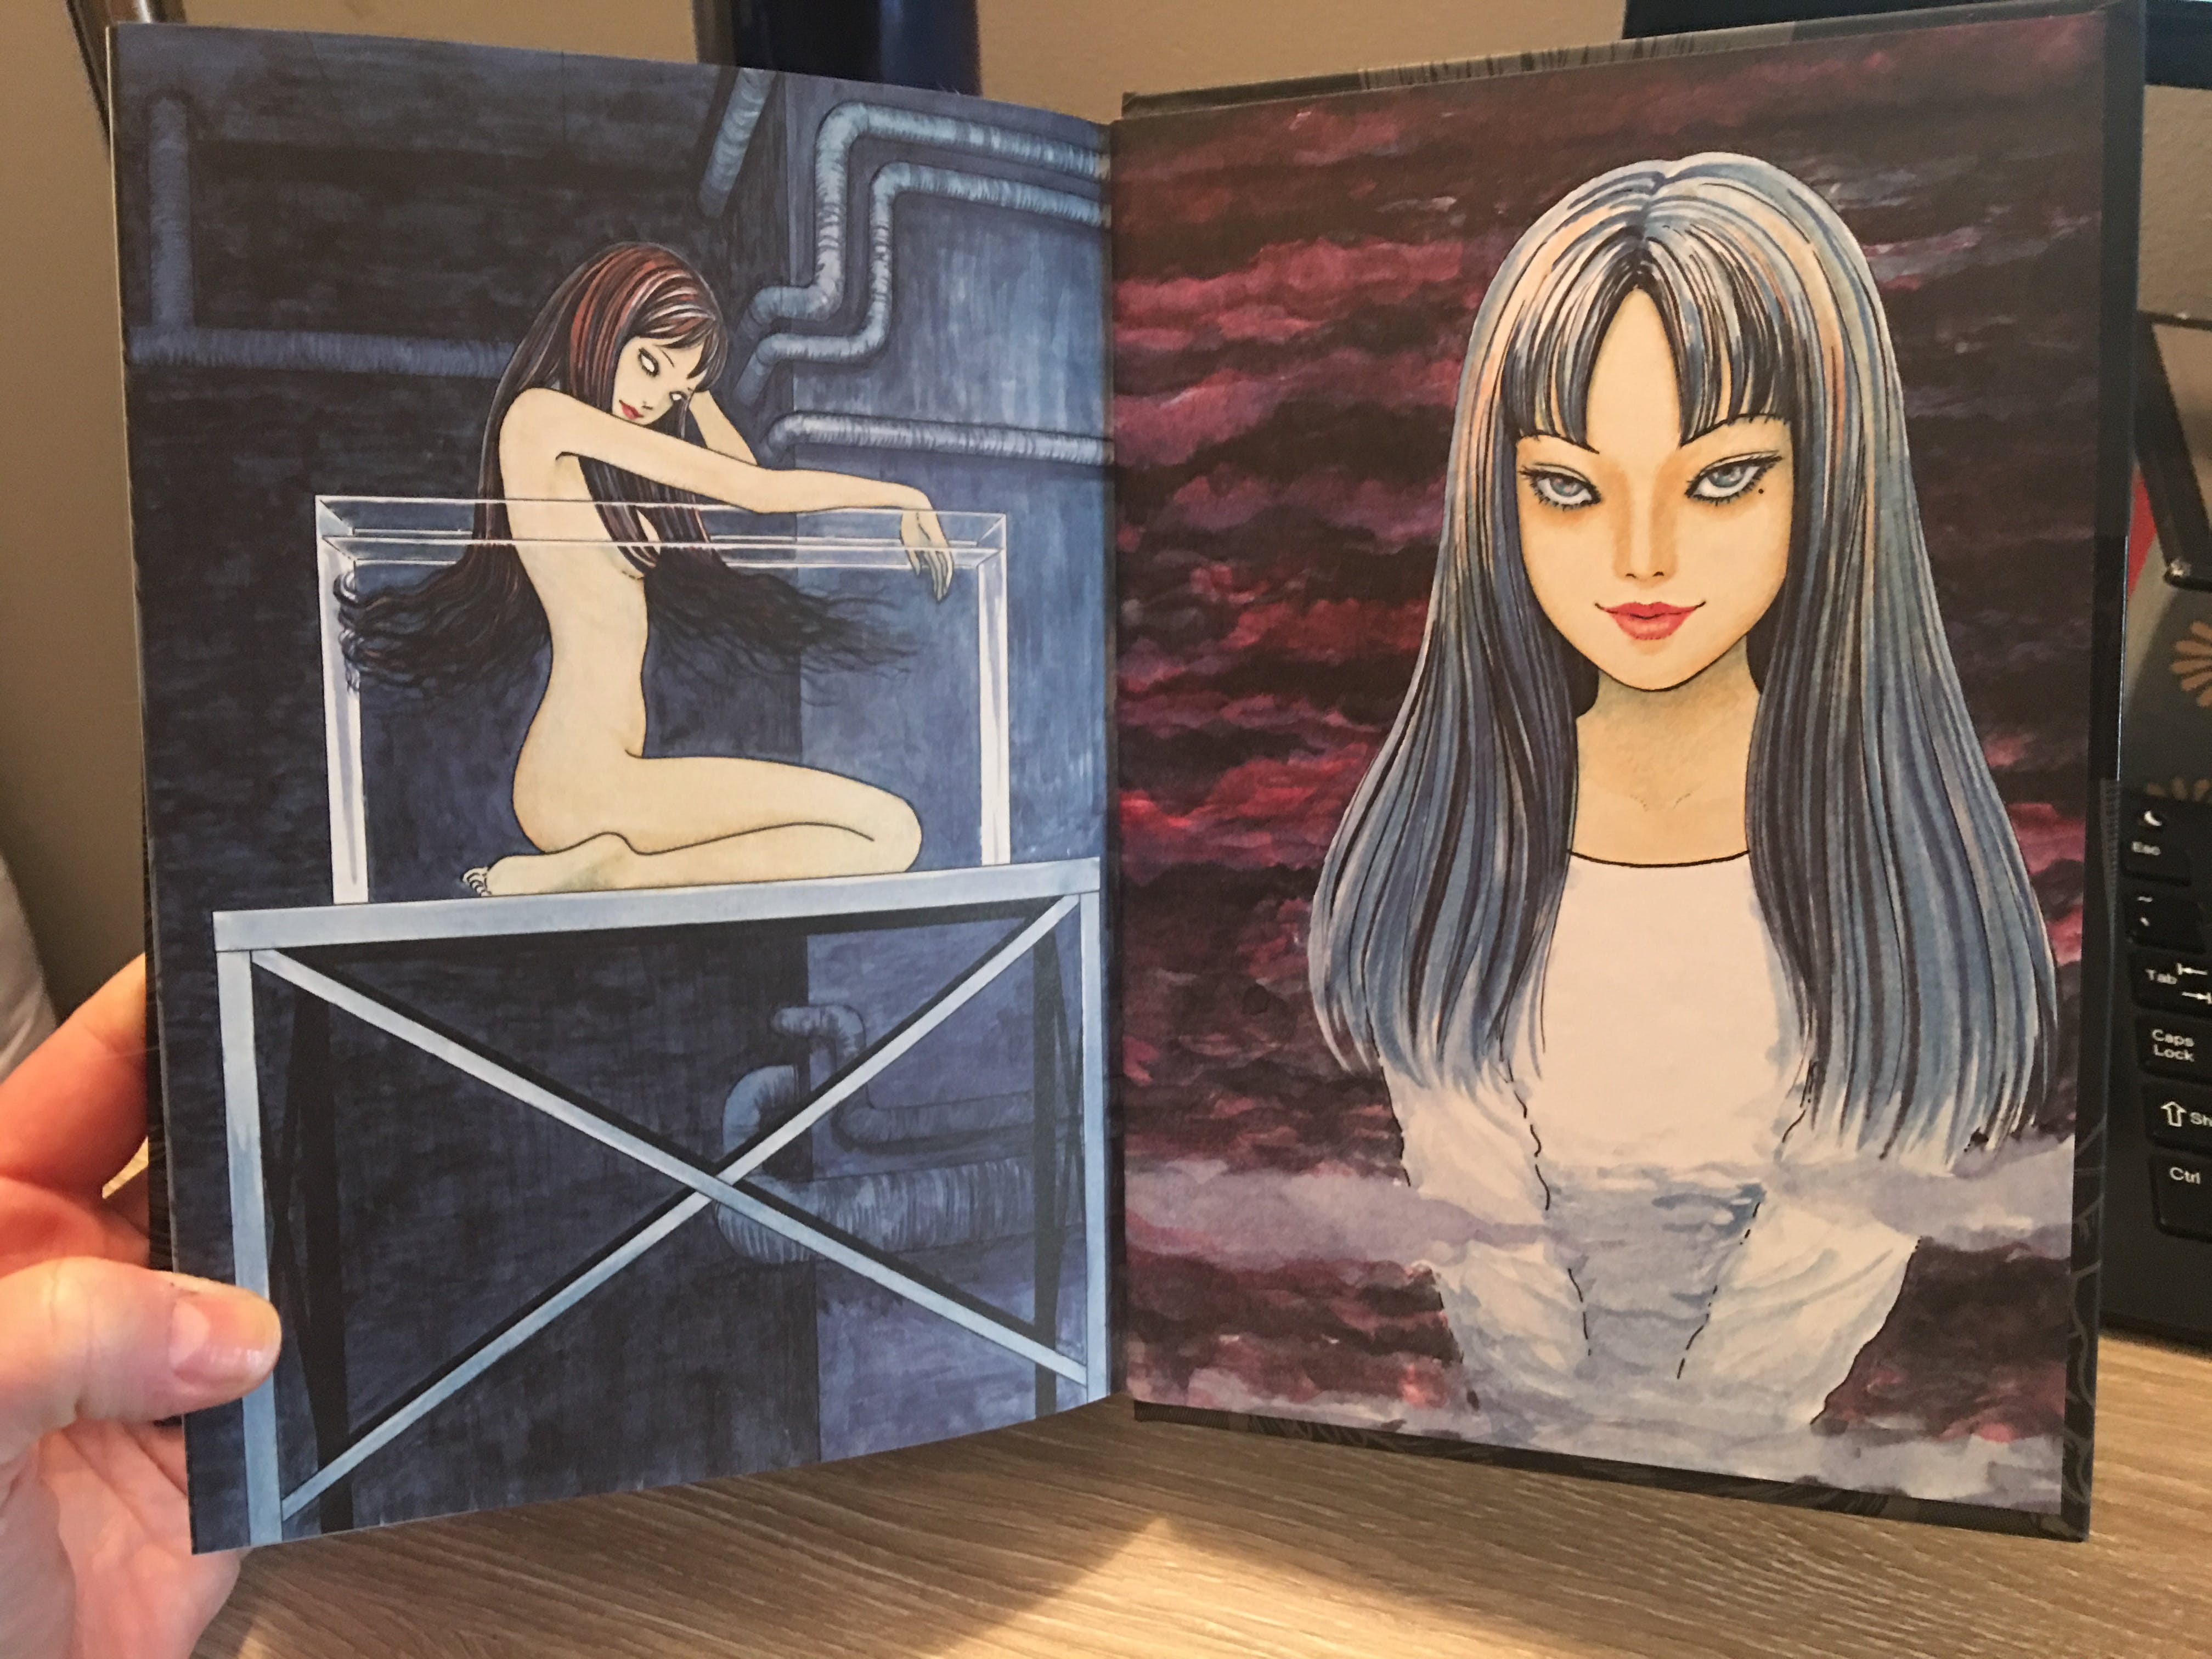 Ito's chilling art adorns the inner pages.